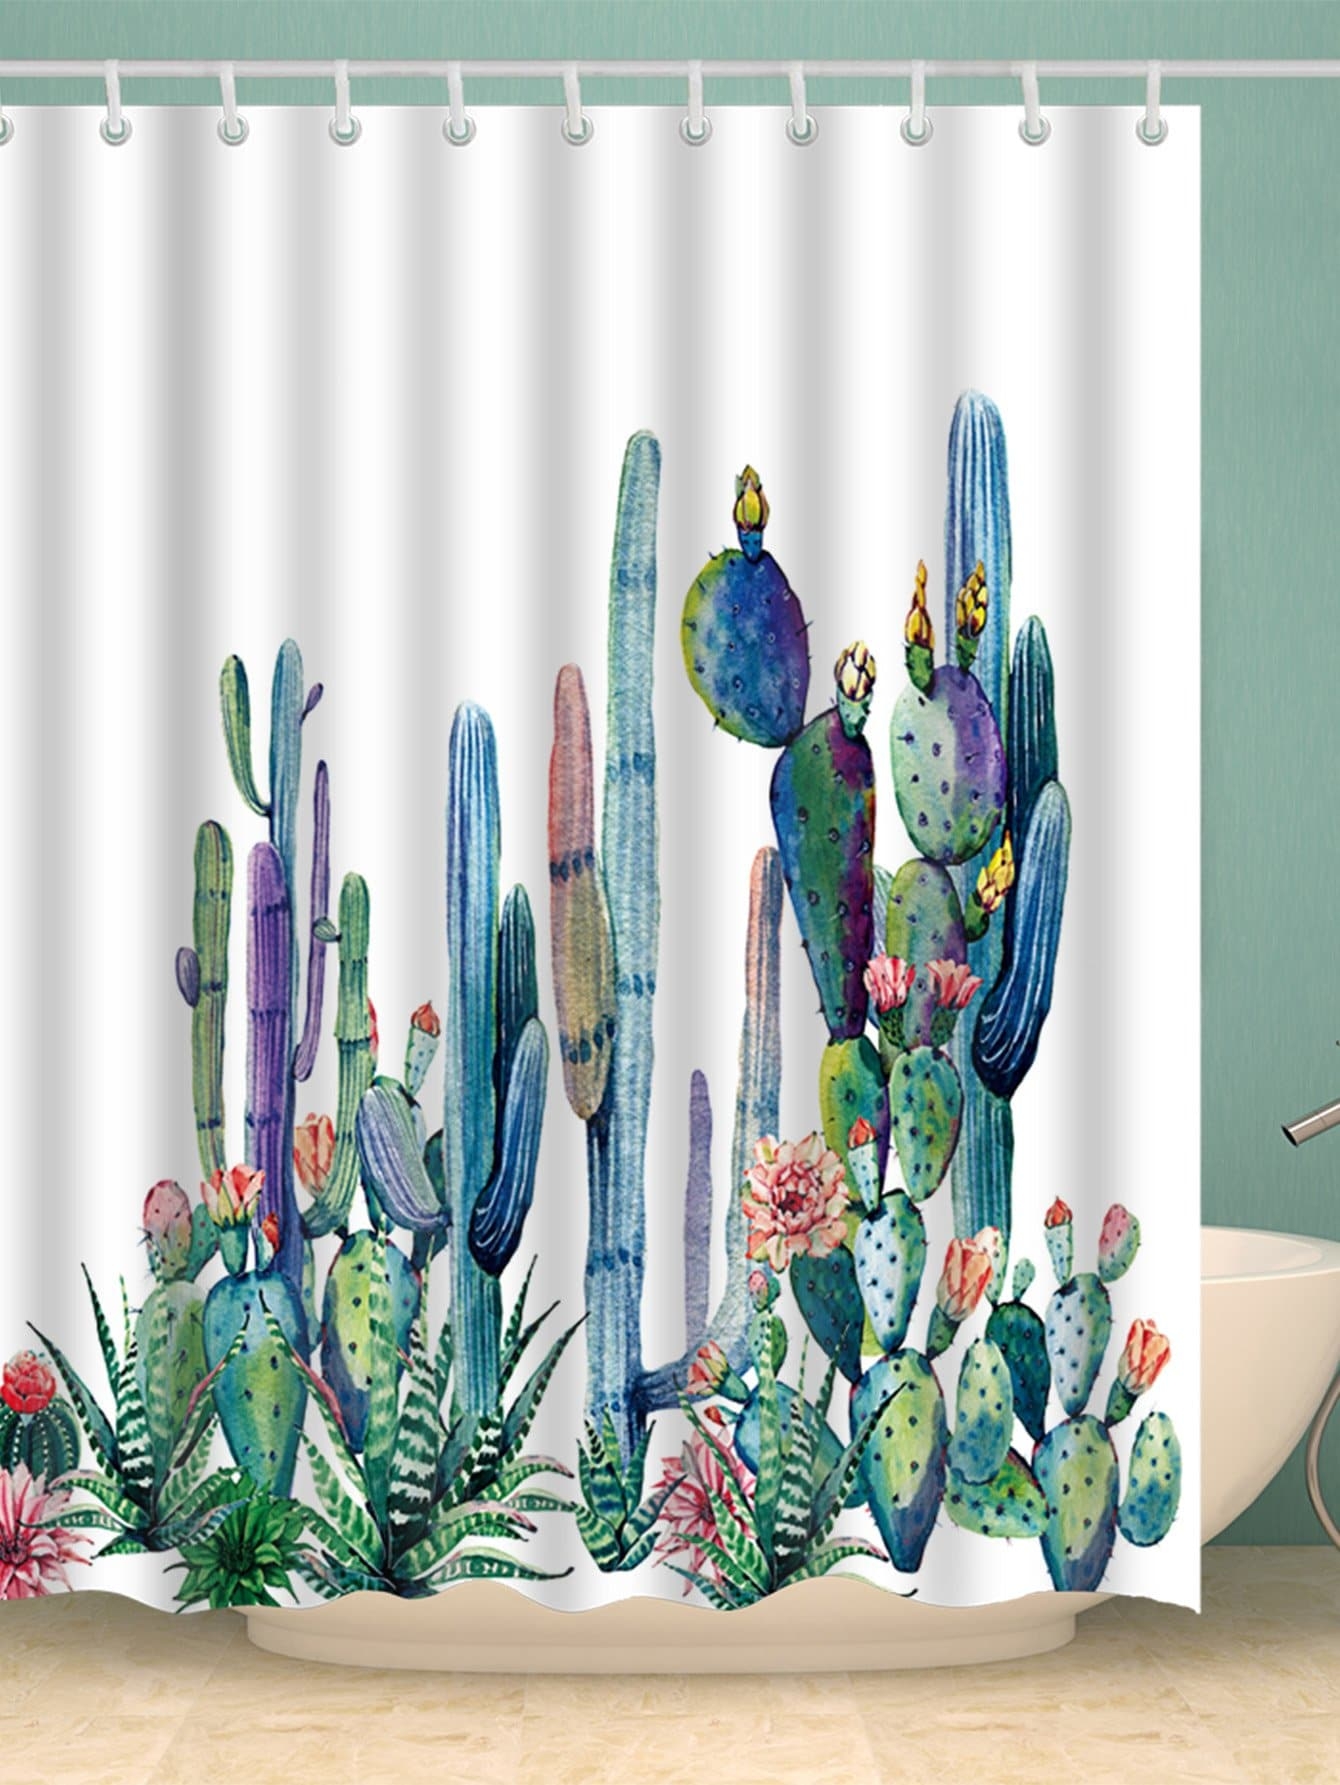 Cactus Shower Curtain With Hook 12pcs geometric shower curtain with 12pcs hook